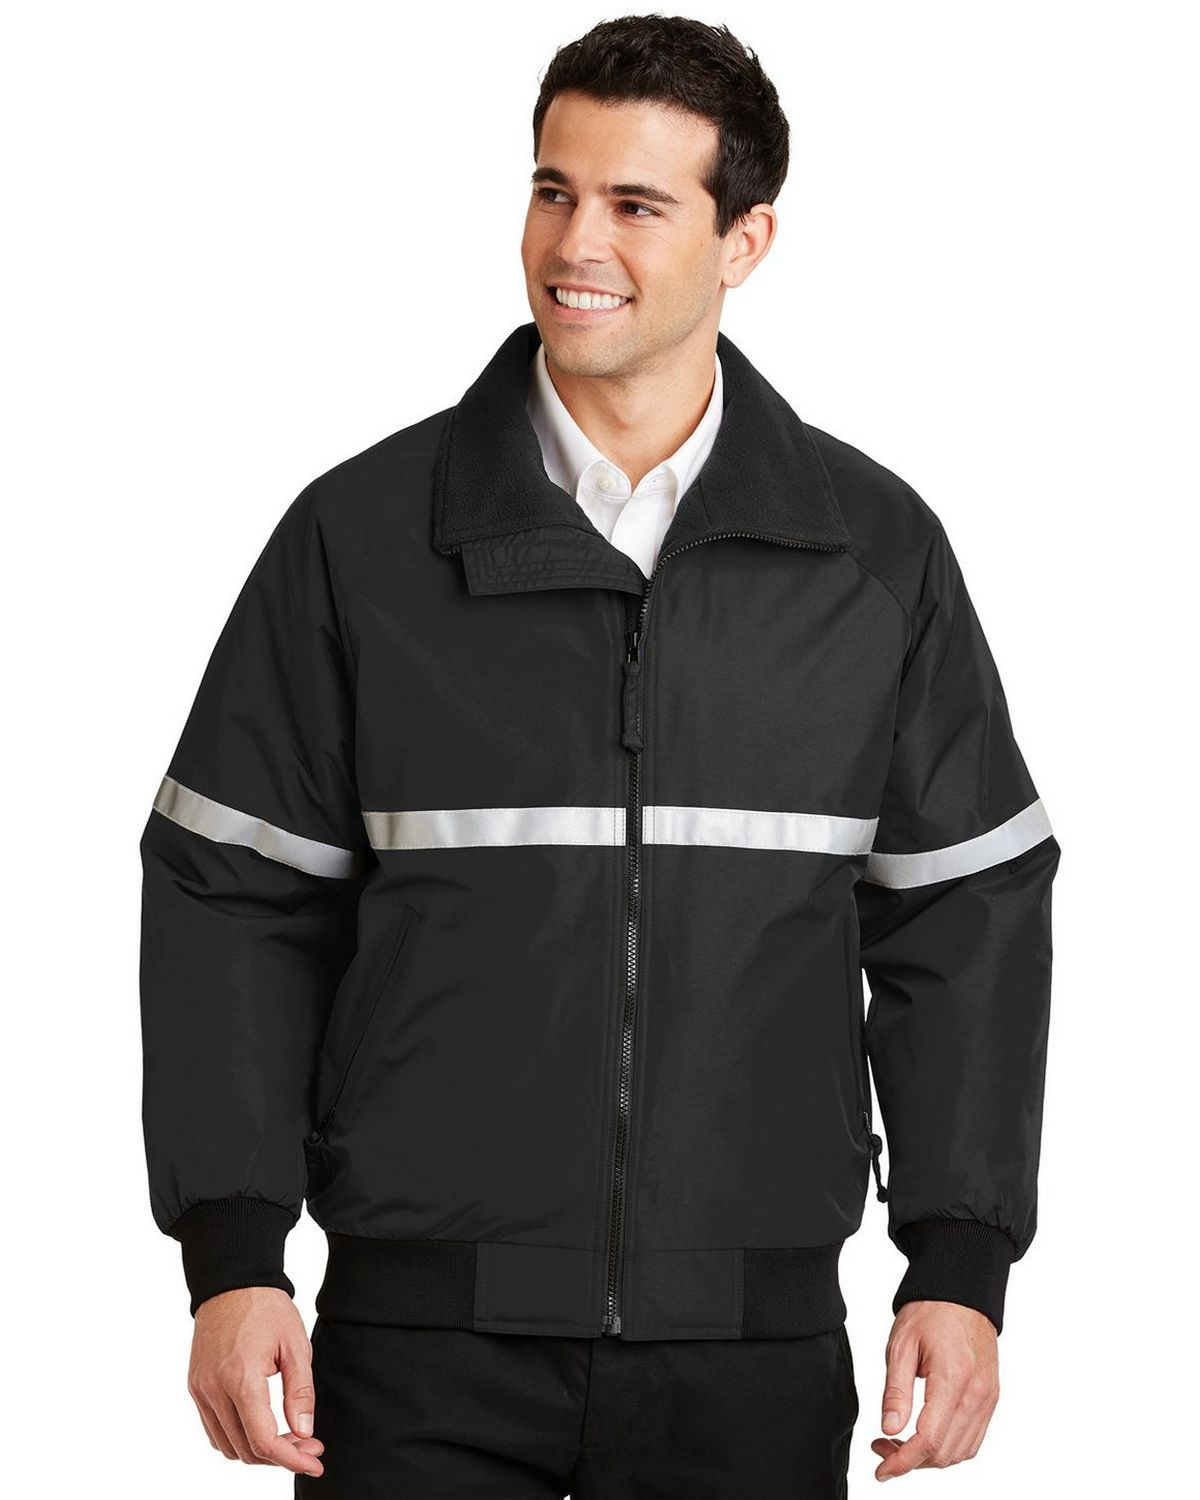 Port Authority J754R Challenger Jacket - True Black/True Black/Reflective - M J754R